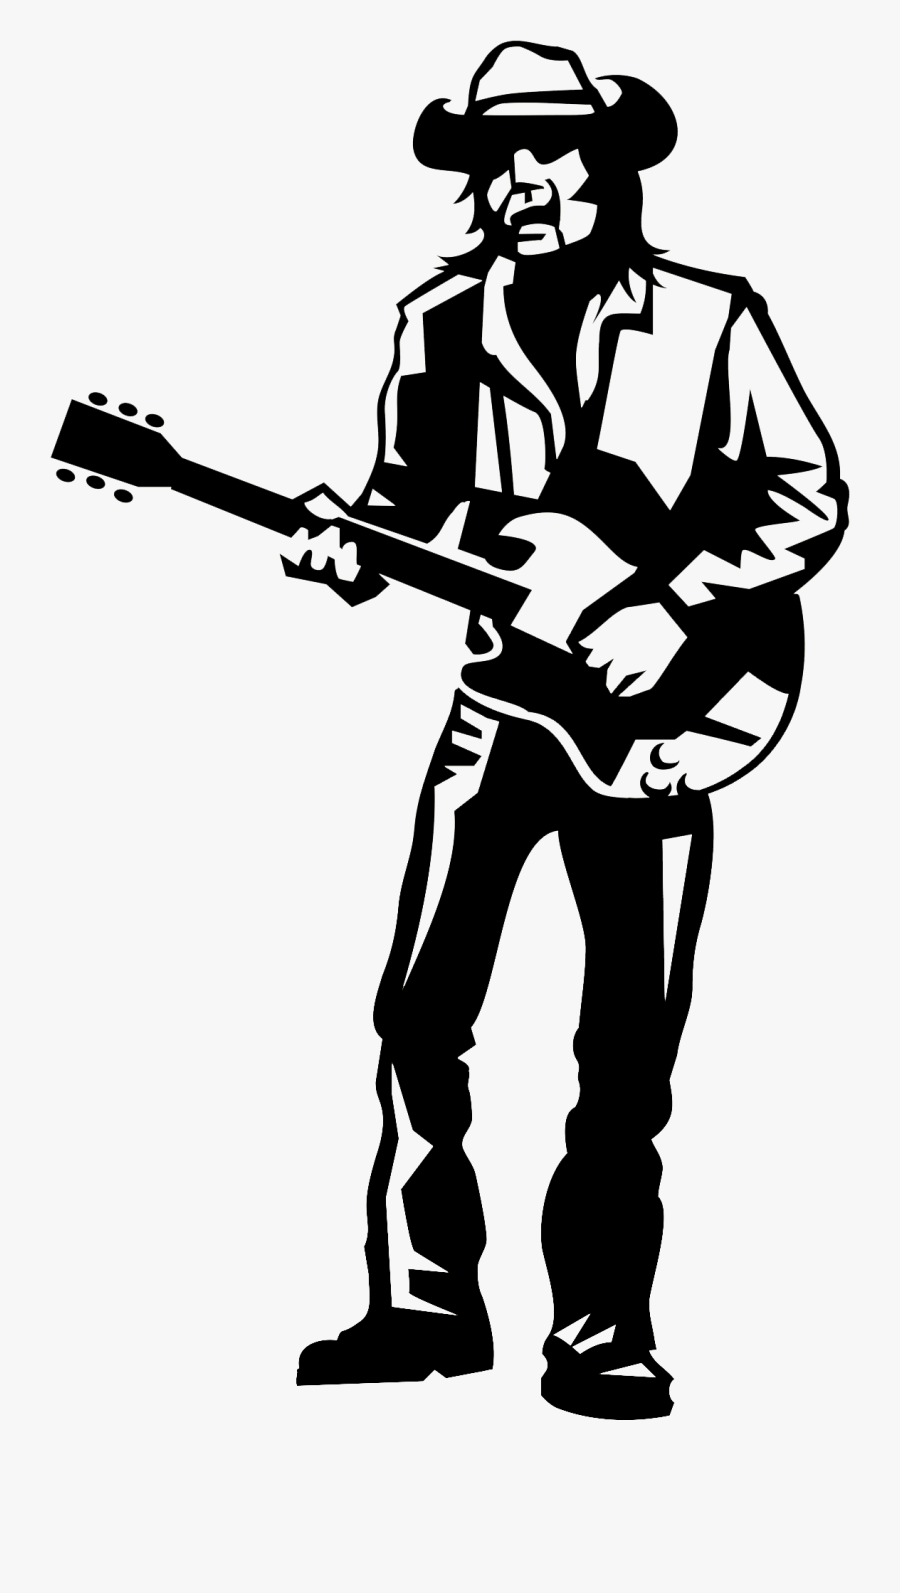 man with guitar silhouette guitar player clipart image silhouette of a man sitting on guitar with man silhouette